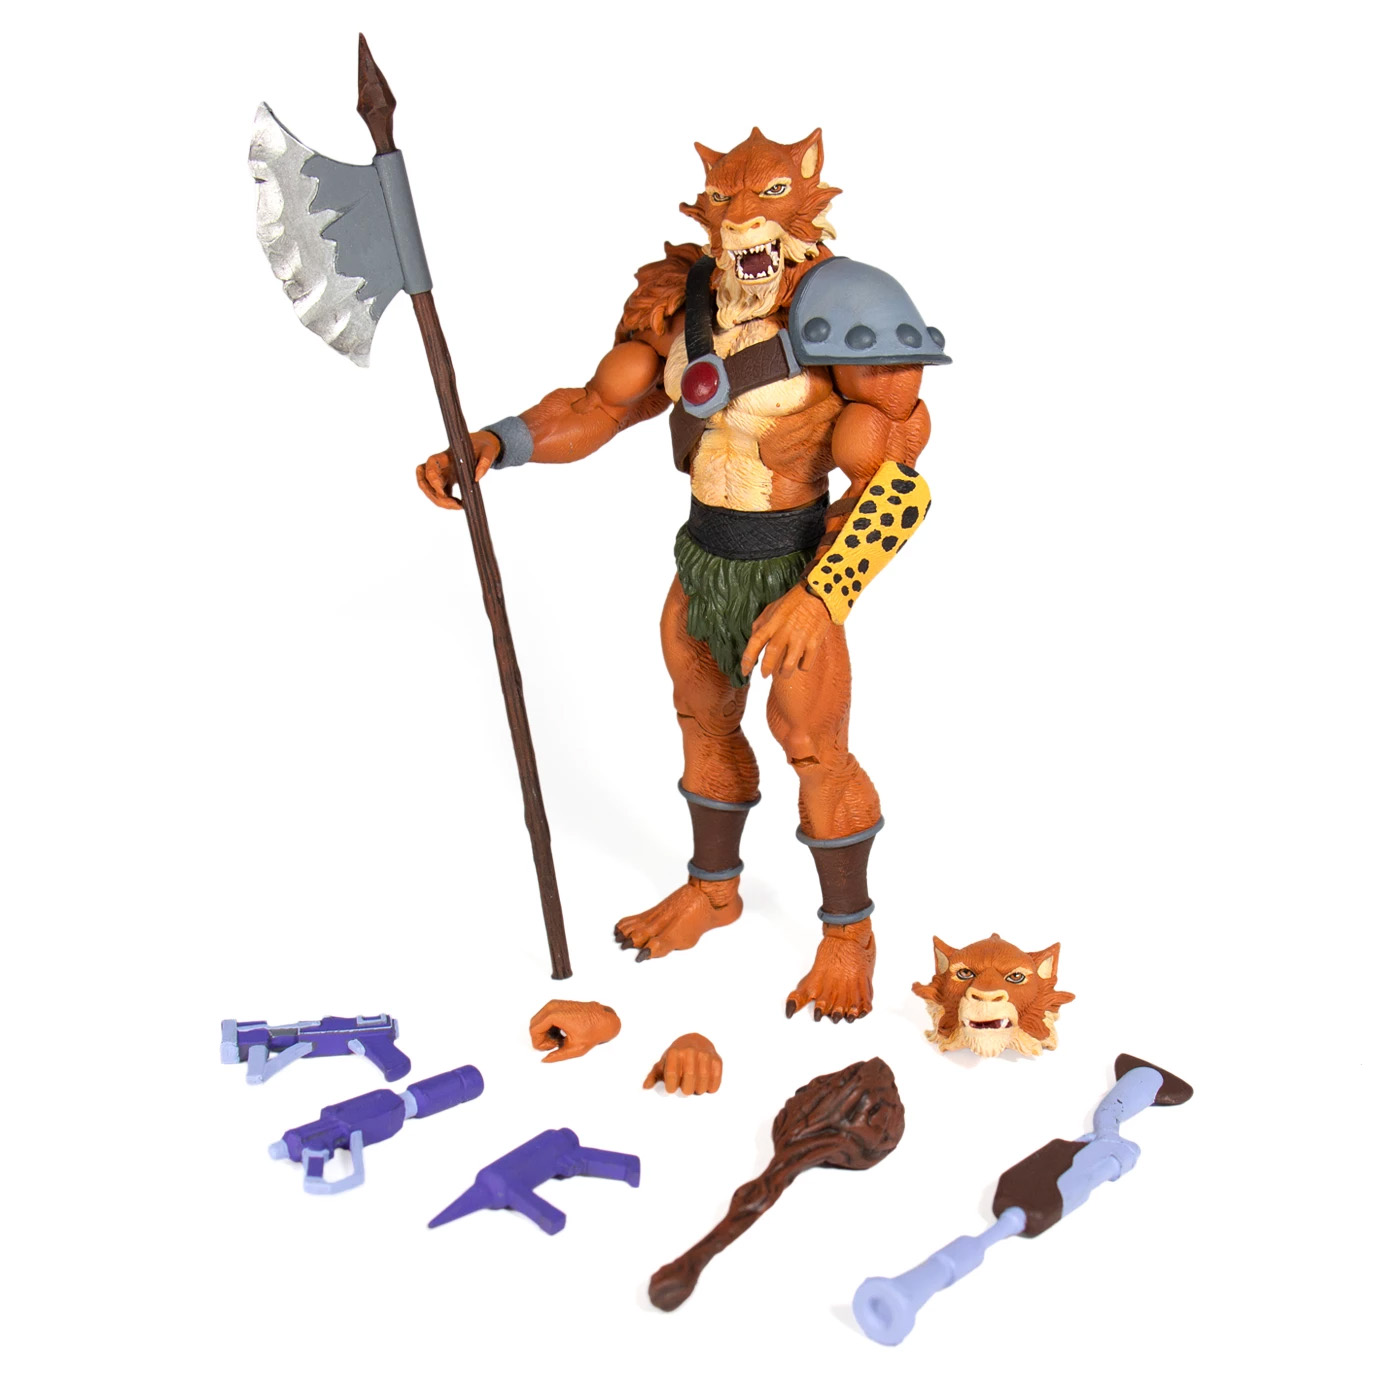 JACKALMAN ThunderCats Ultimate 7-Inch Action Figure